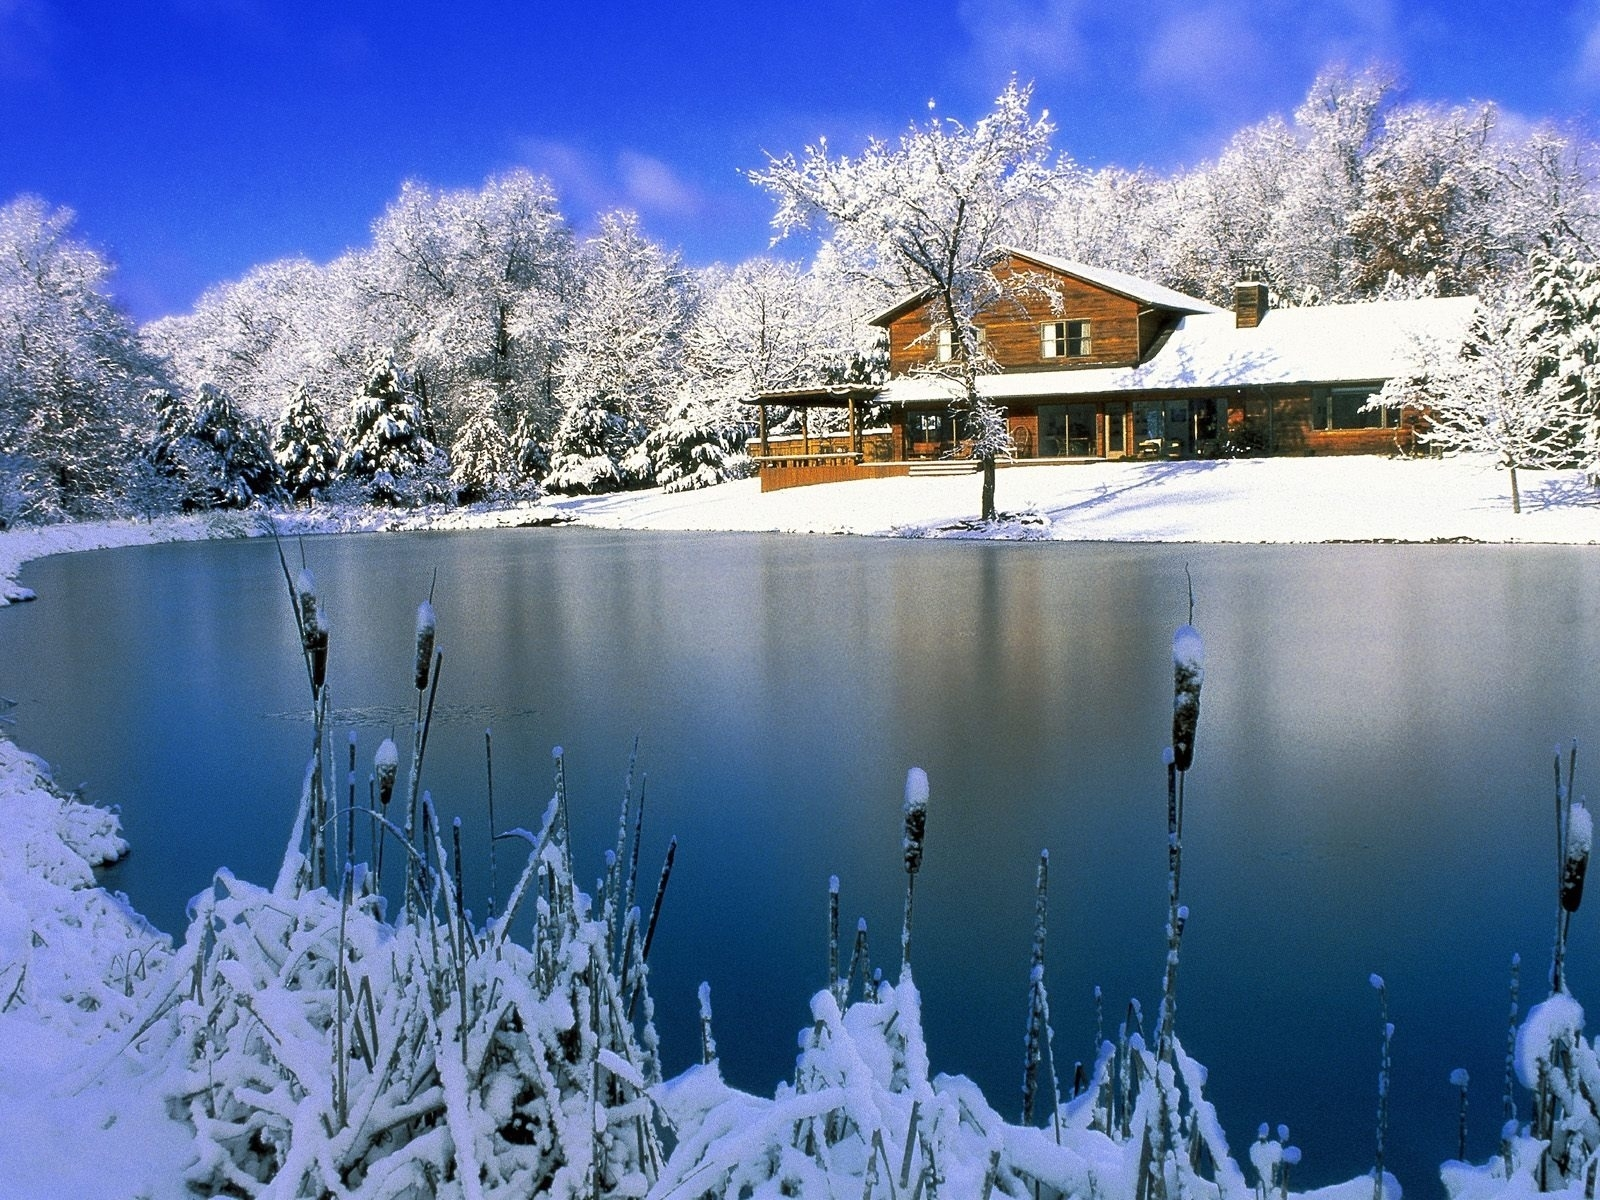 winter nature scenes wallpapers for free download about (1,539